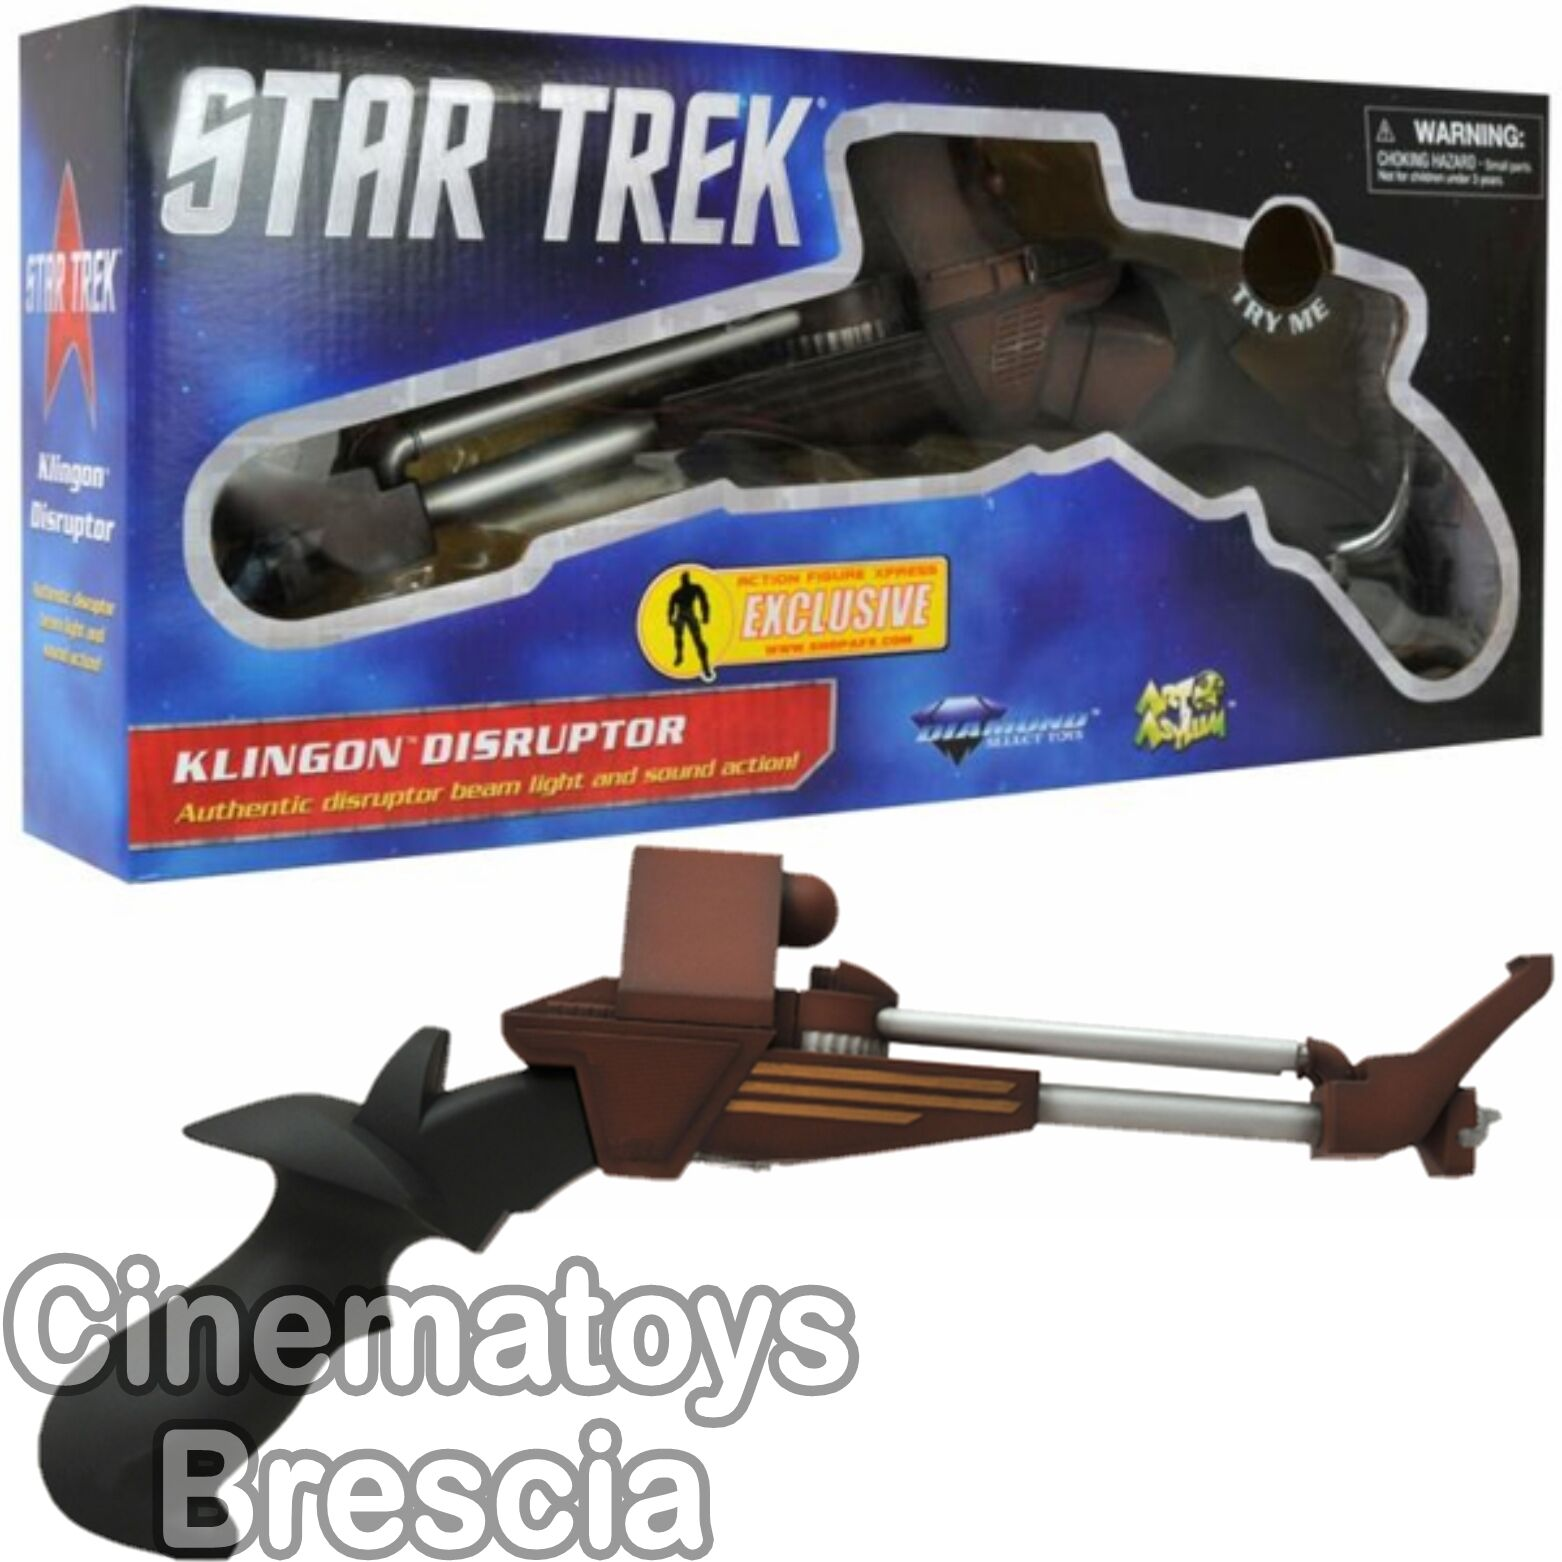 AFX Exclusive Star Trek 3 Search for Spock Commander Kruge Klingon Disruptor 1 1